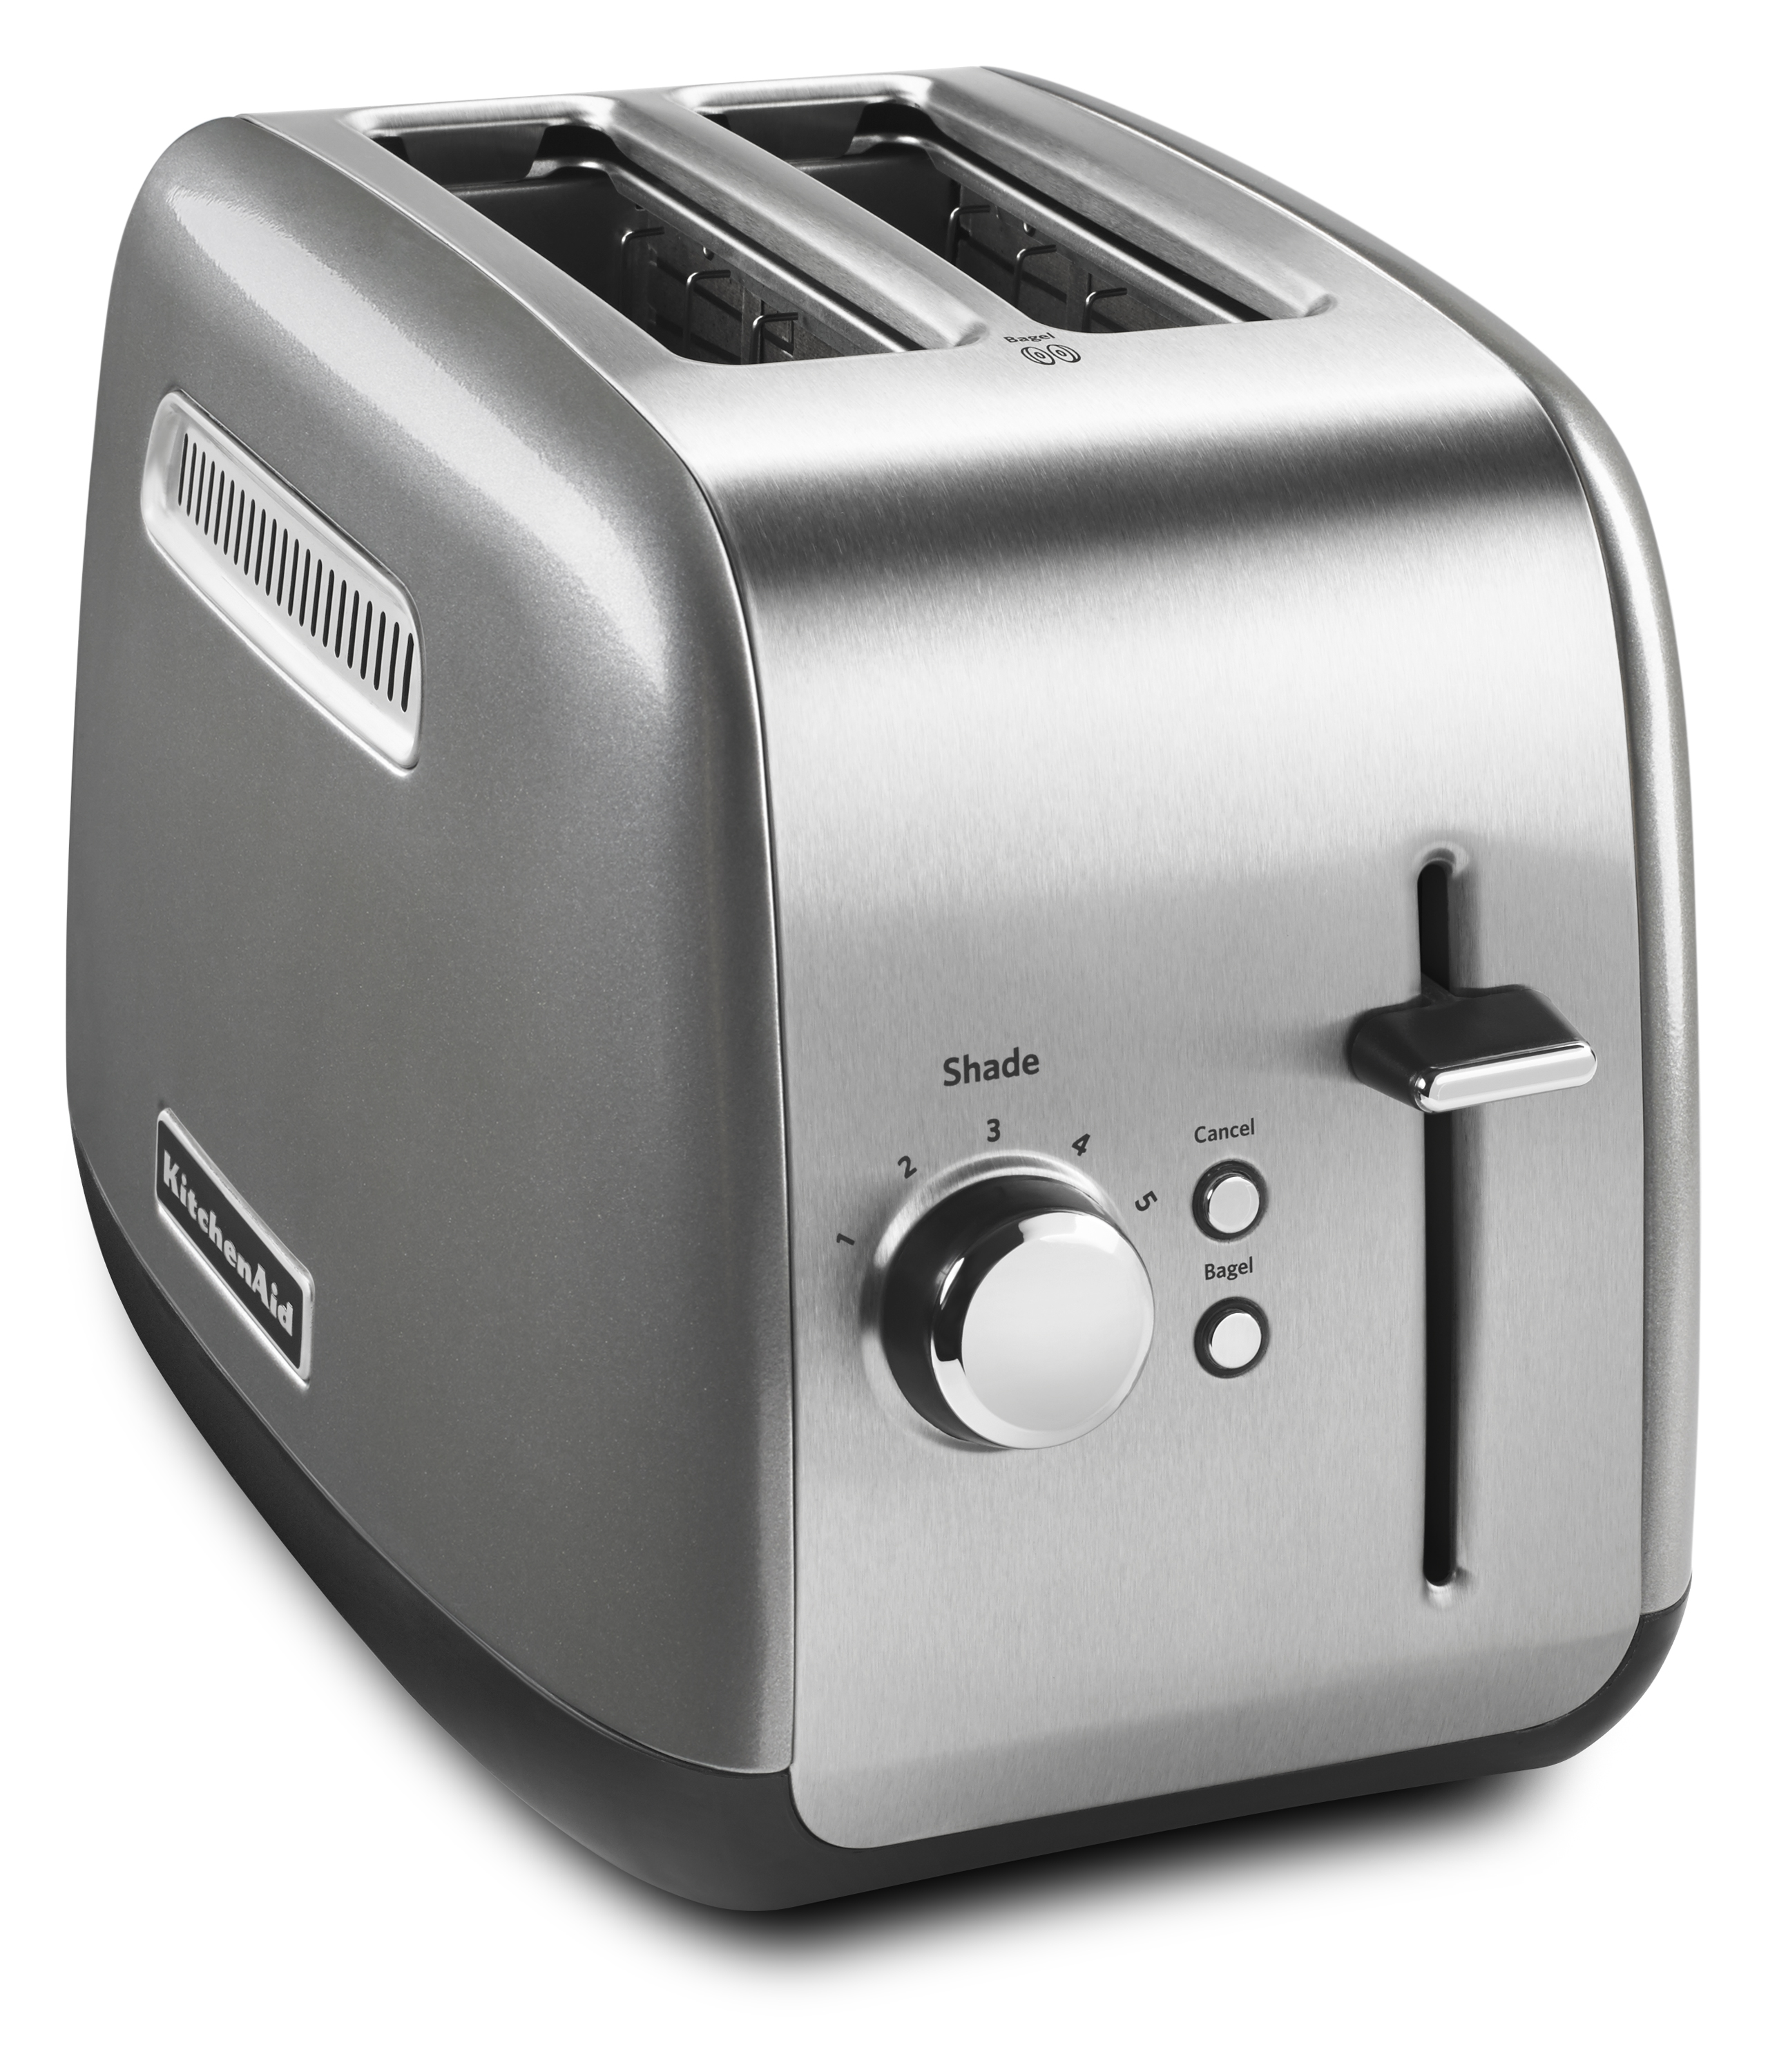 KitchenAid® 2 Slice Toaster With Manual Lift Lever, Contour Silver  (KMT2115CU)